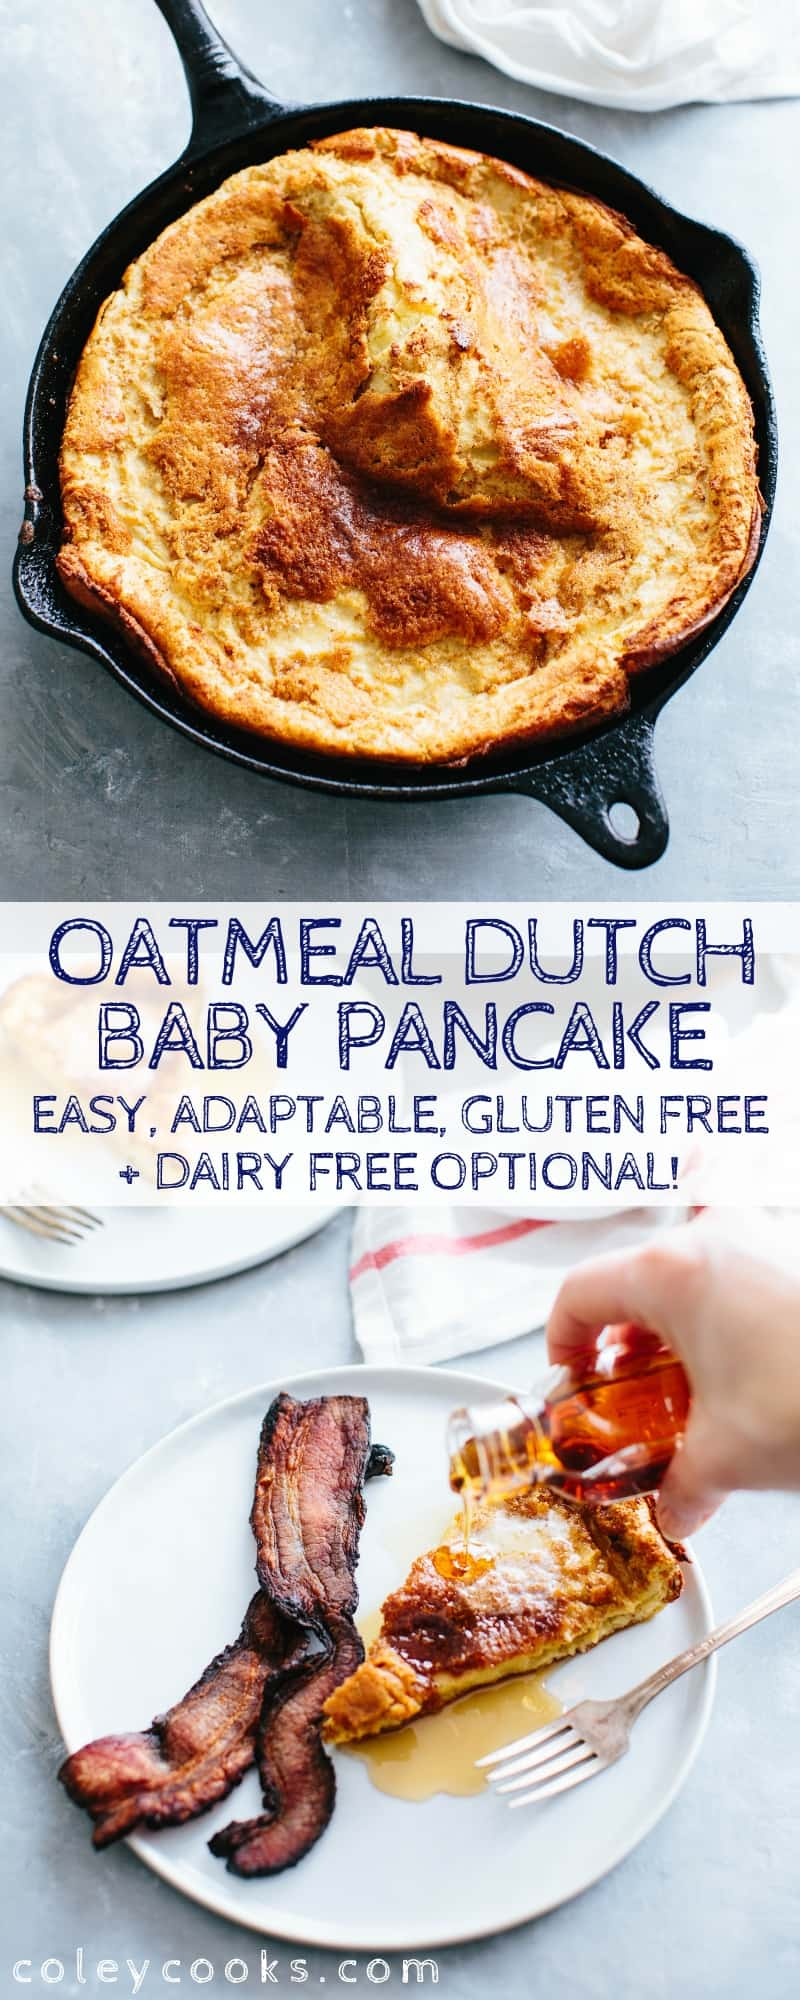 This Oatmeal Dutch Baby Pancake is gluten free, dairy free optional and SO easy to make! Adaptable, universal recipe that's as healthy as it is delicious. #oatmeal #pancake #dutch #baby #easy #recipe #breakfast #glutenfree | ColeyCooks.com